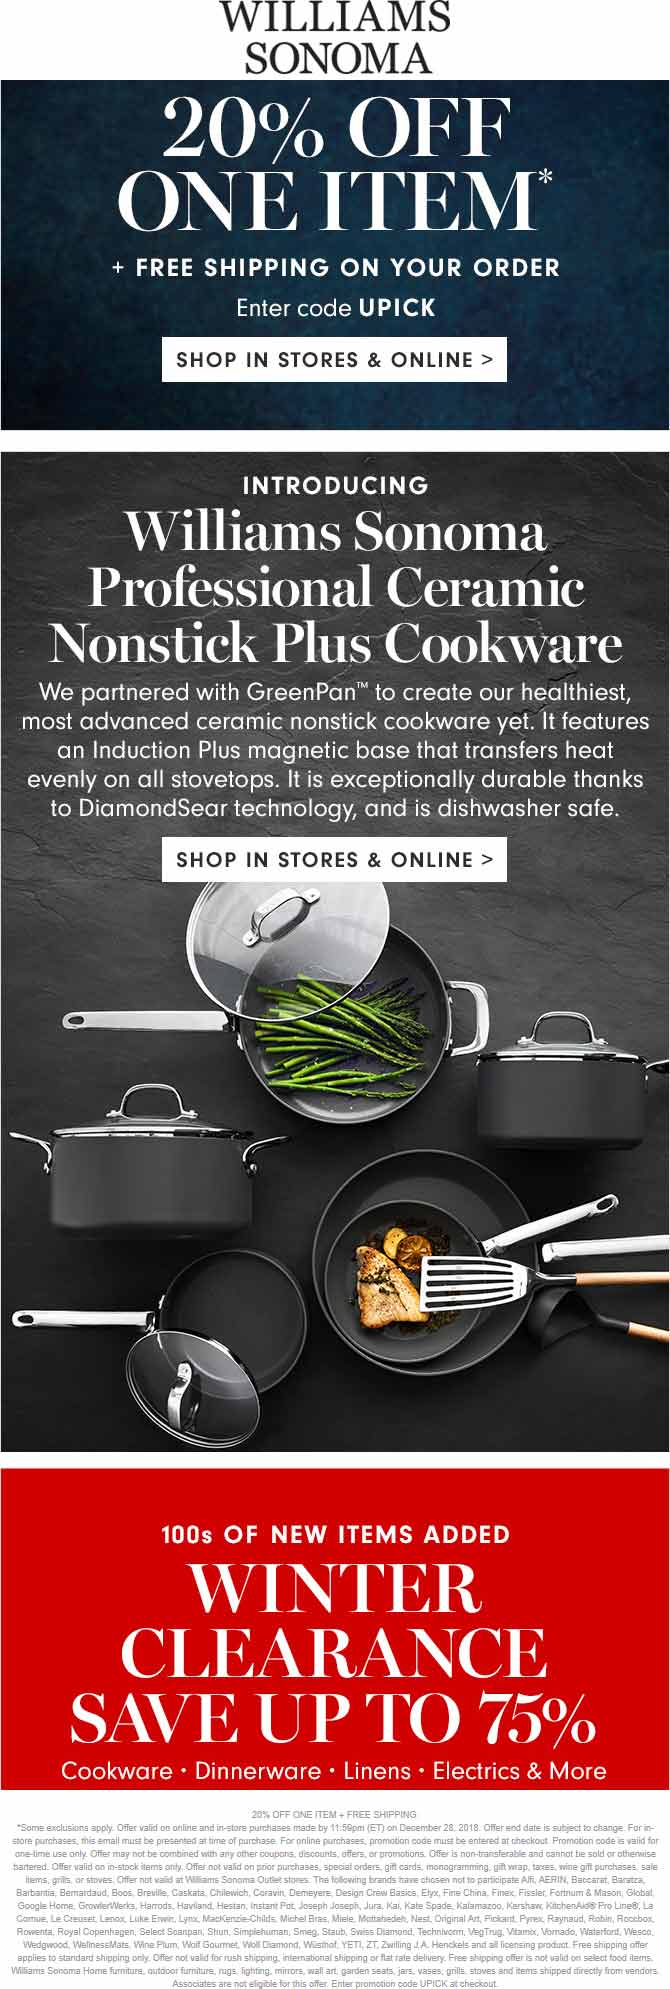 Williams Sonoma Coupon July 2019 20% off a single item at Williams Sonoma, or online via promo code UPICK